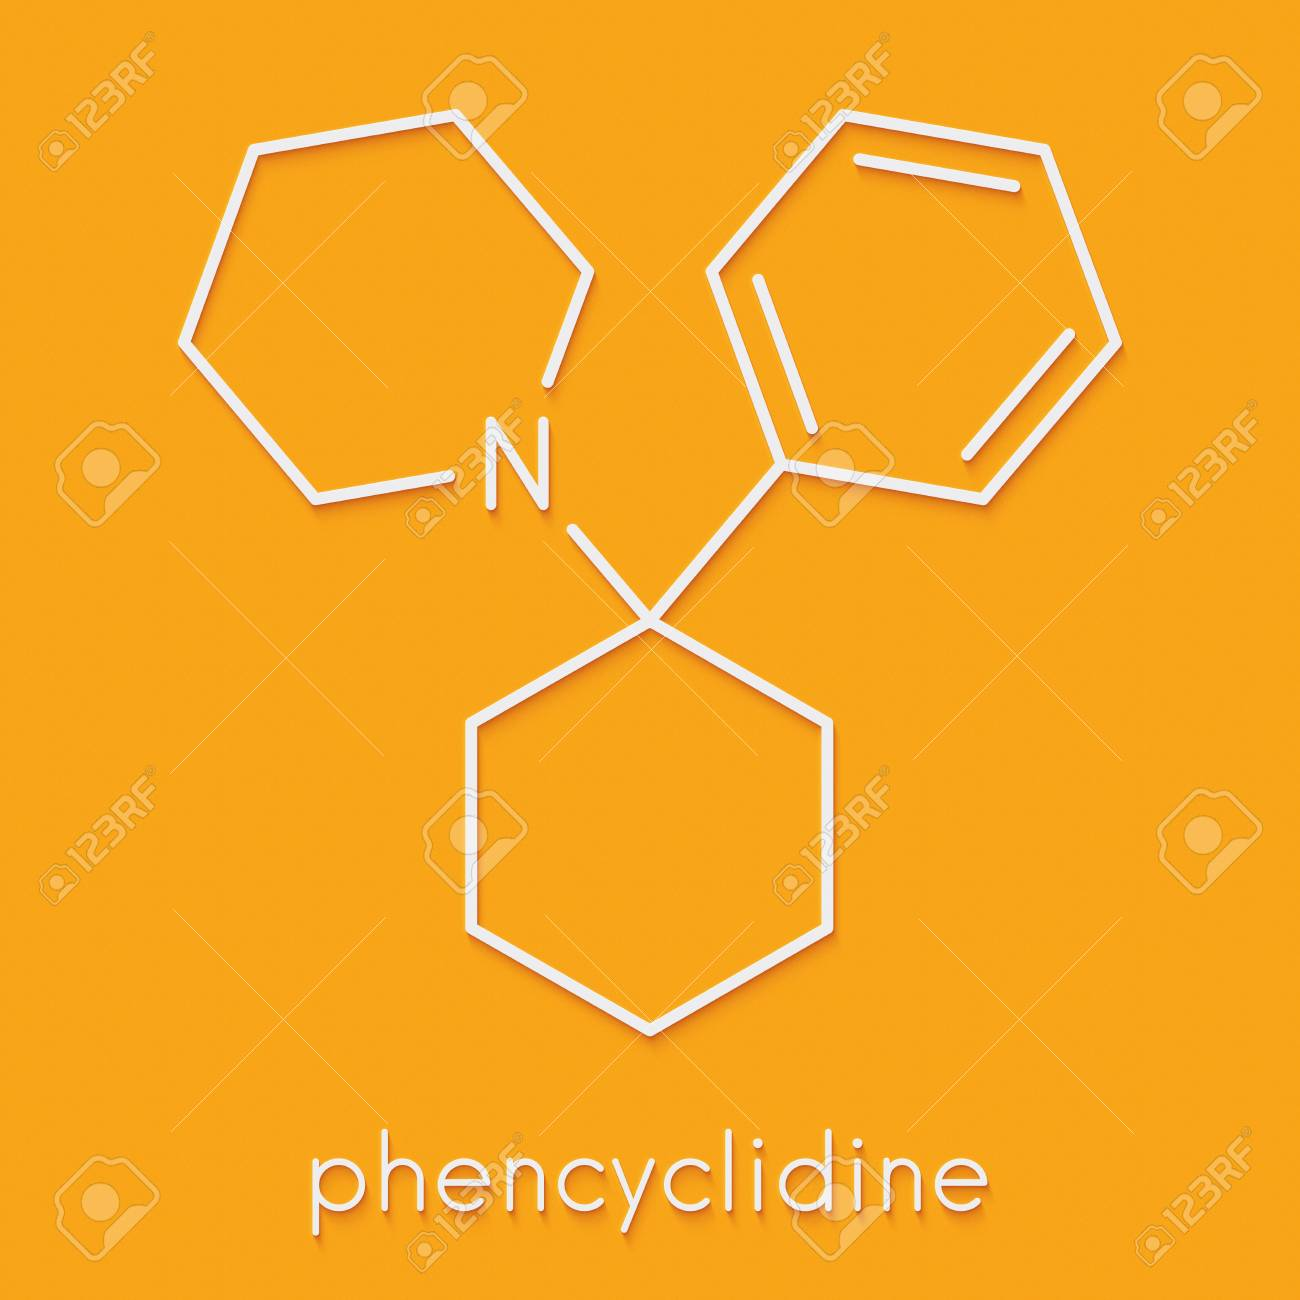 Phencyclidine Pcp Angel Dust Hallucinogenic Drug Molecule